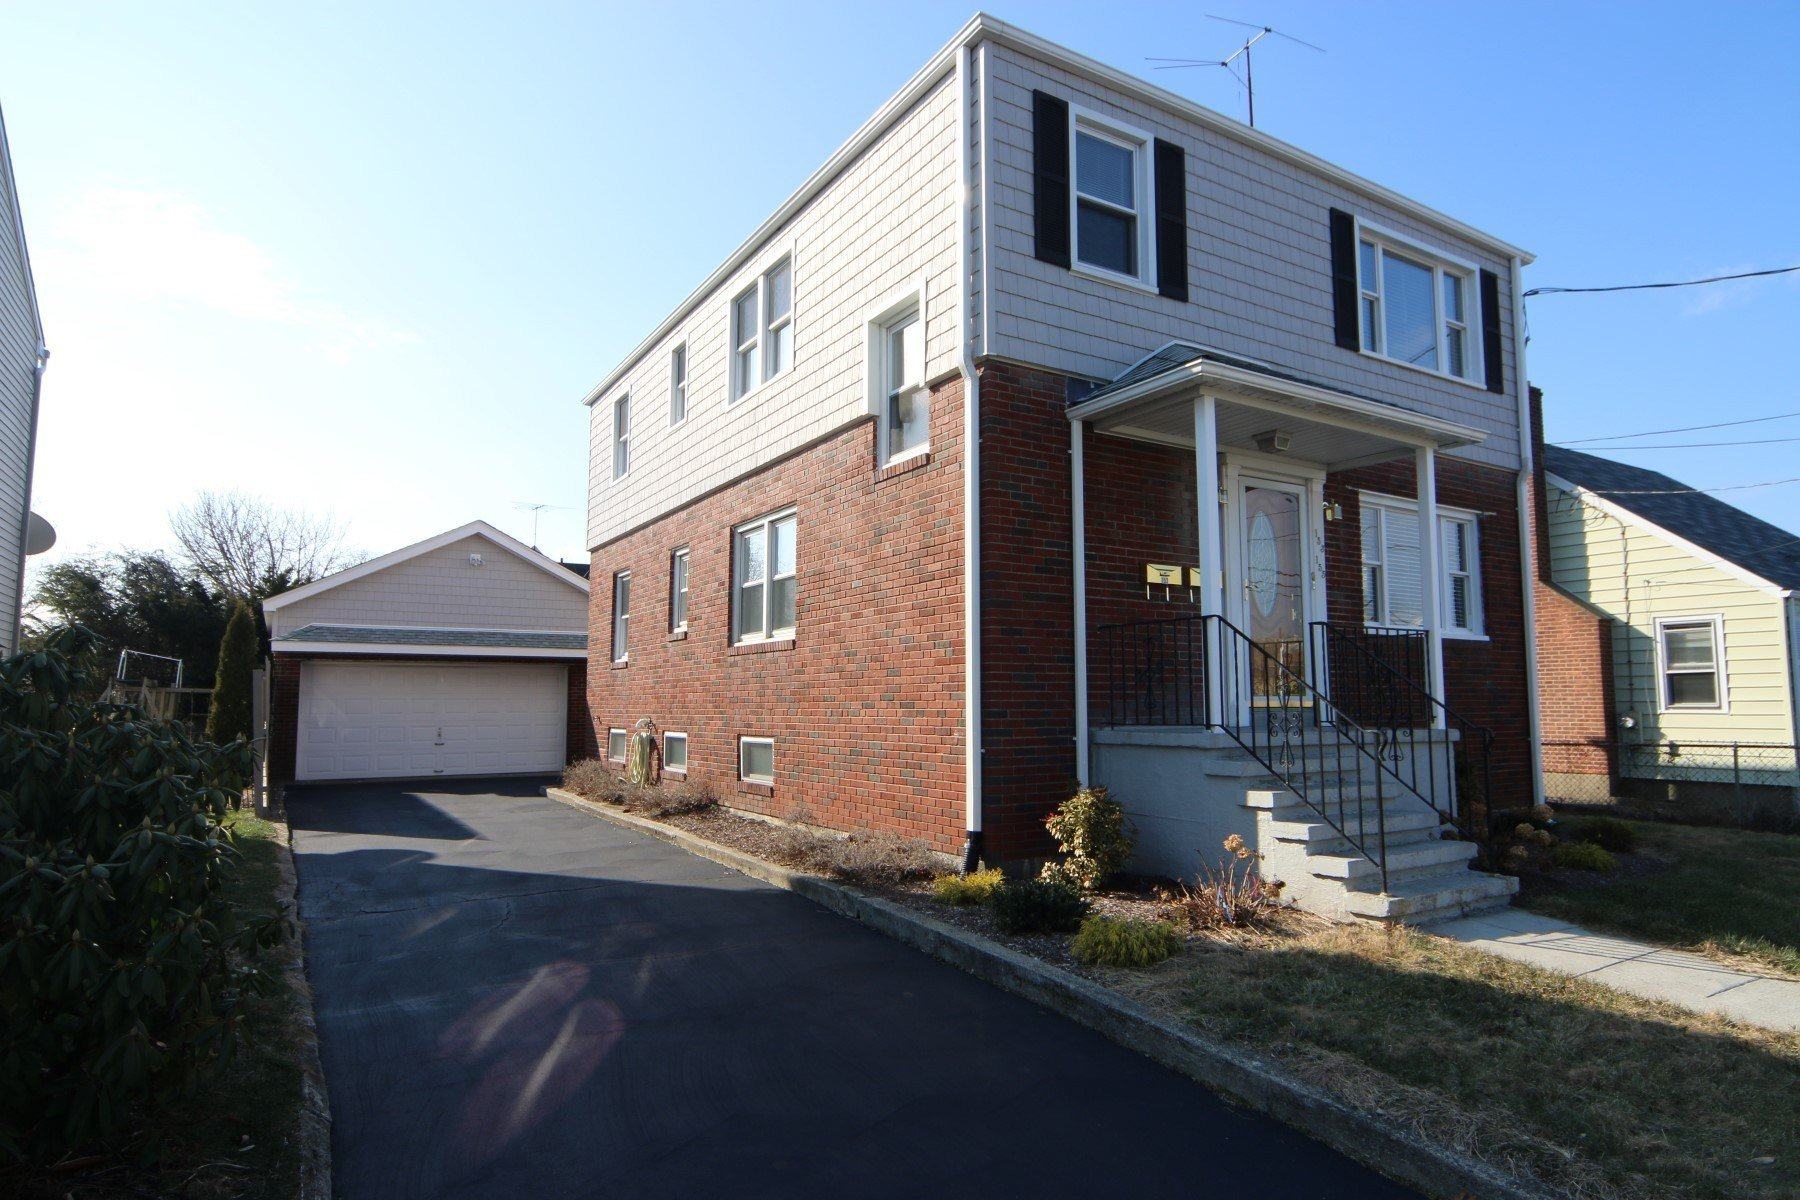 Best 155 King St Bridgeport Ct 06605 2 Bedroom House For Rent With Pictures